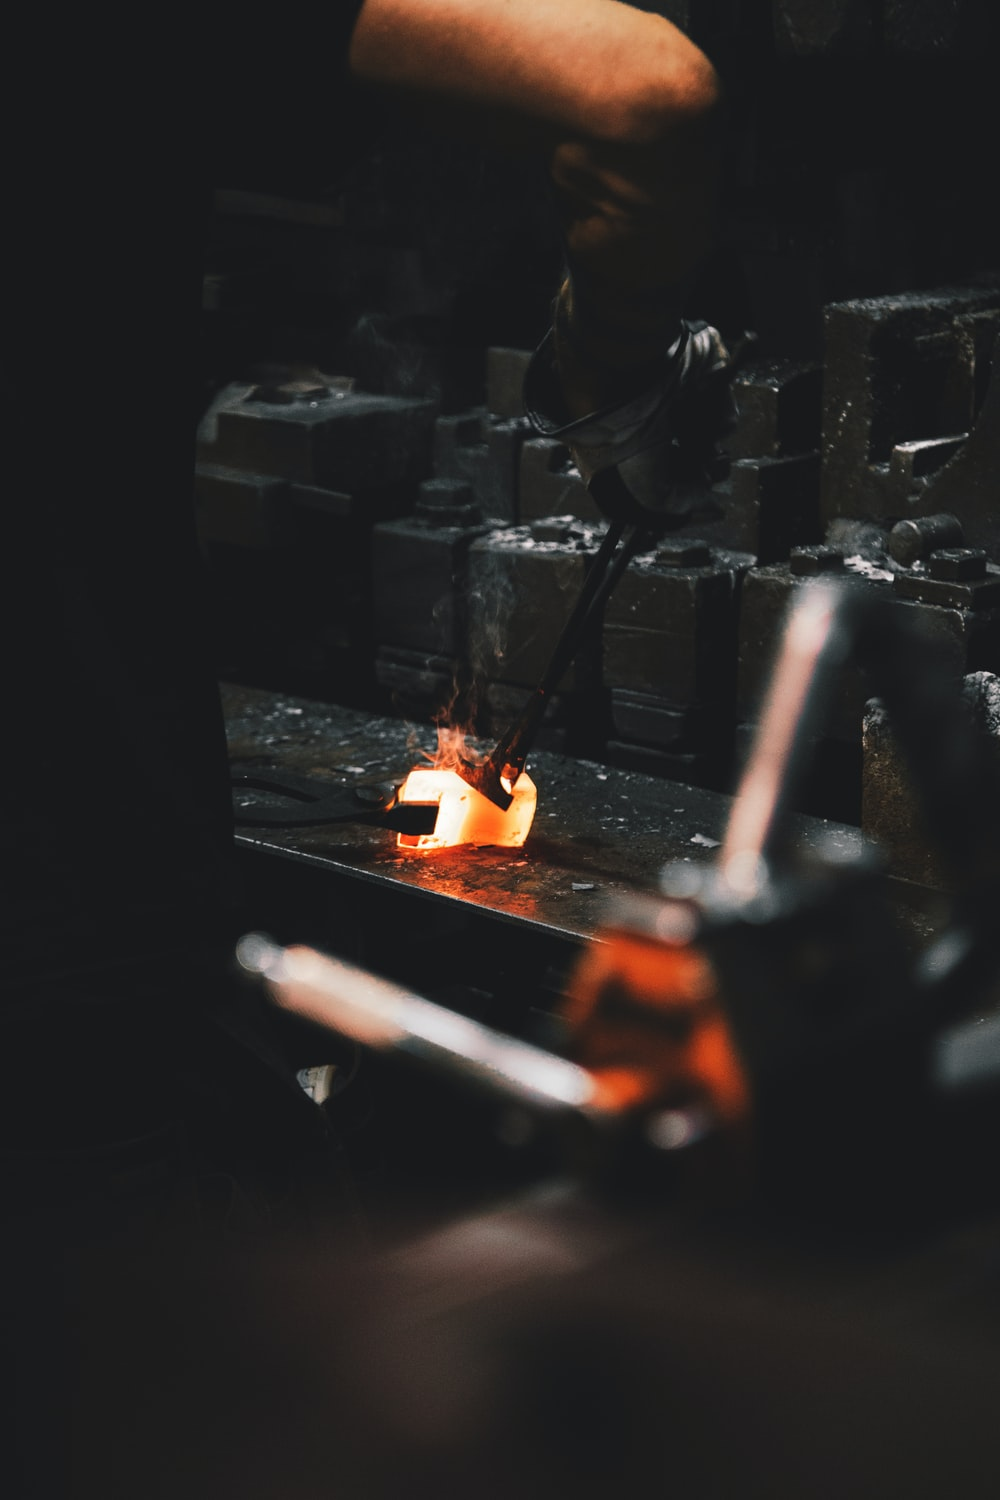 person holding forging tong